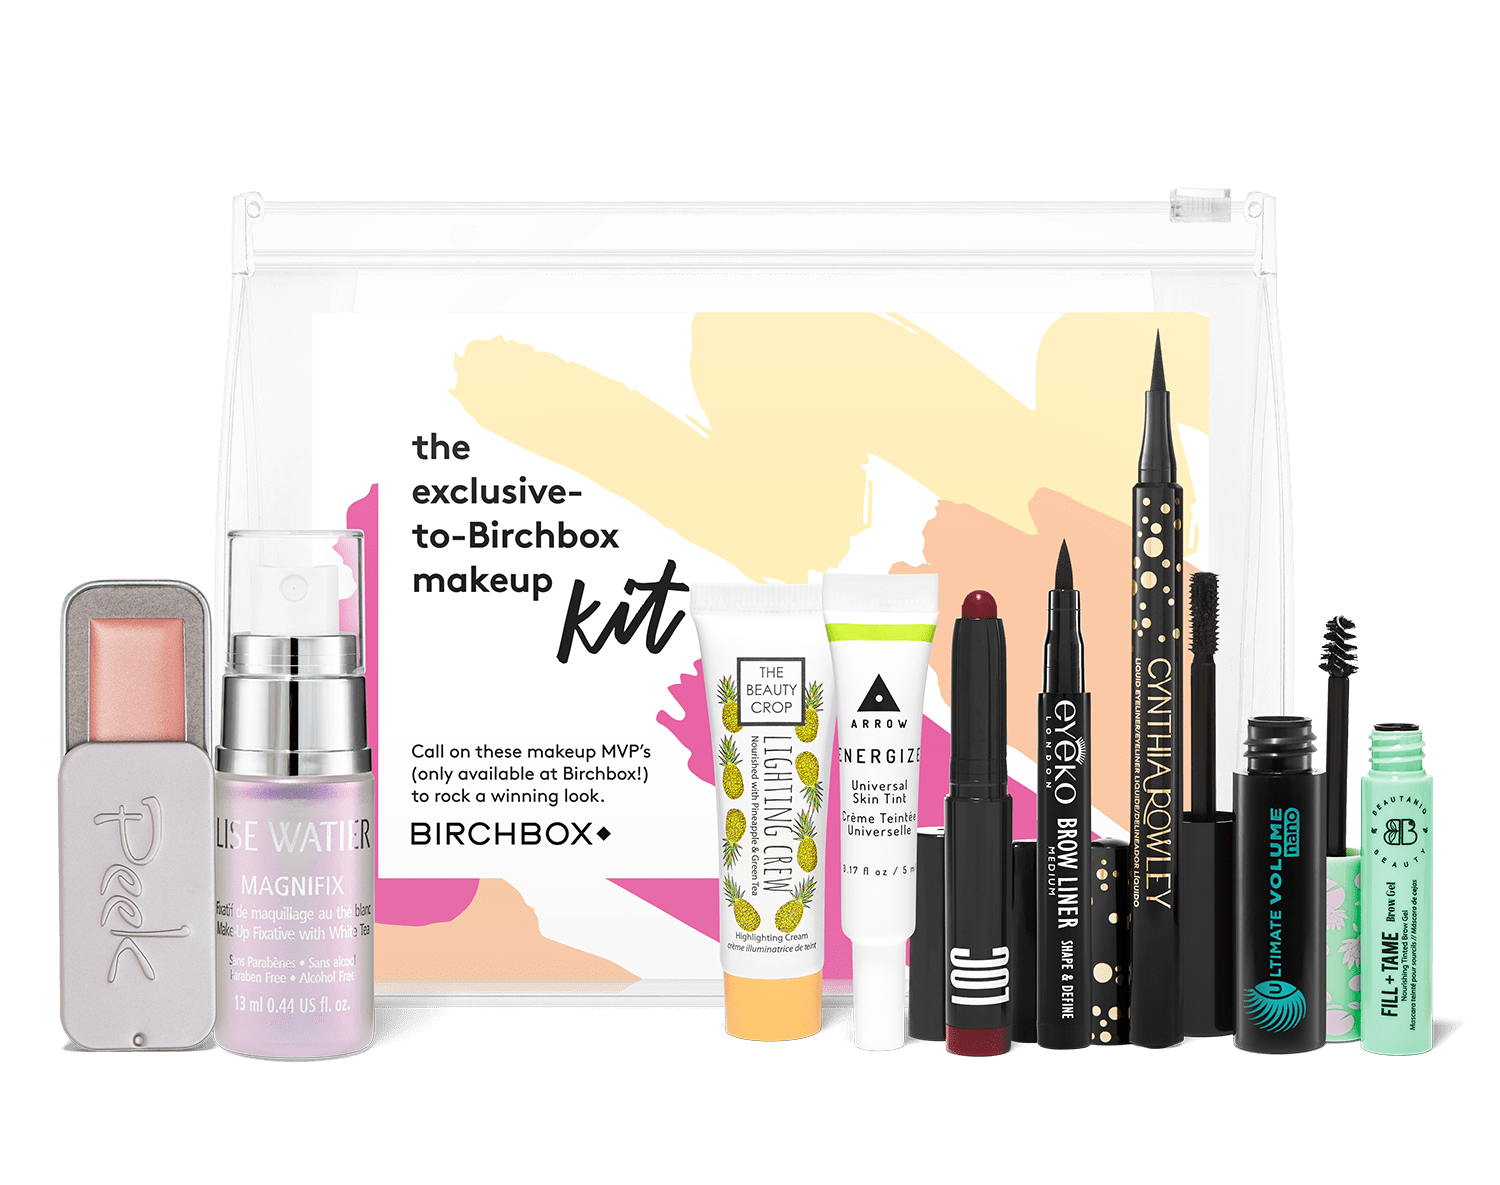 New Birchbox Kit + Free Gift Coupons – The Exclusive-to-Birchbox Makeup Kit!